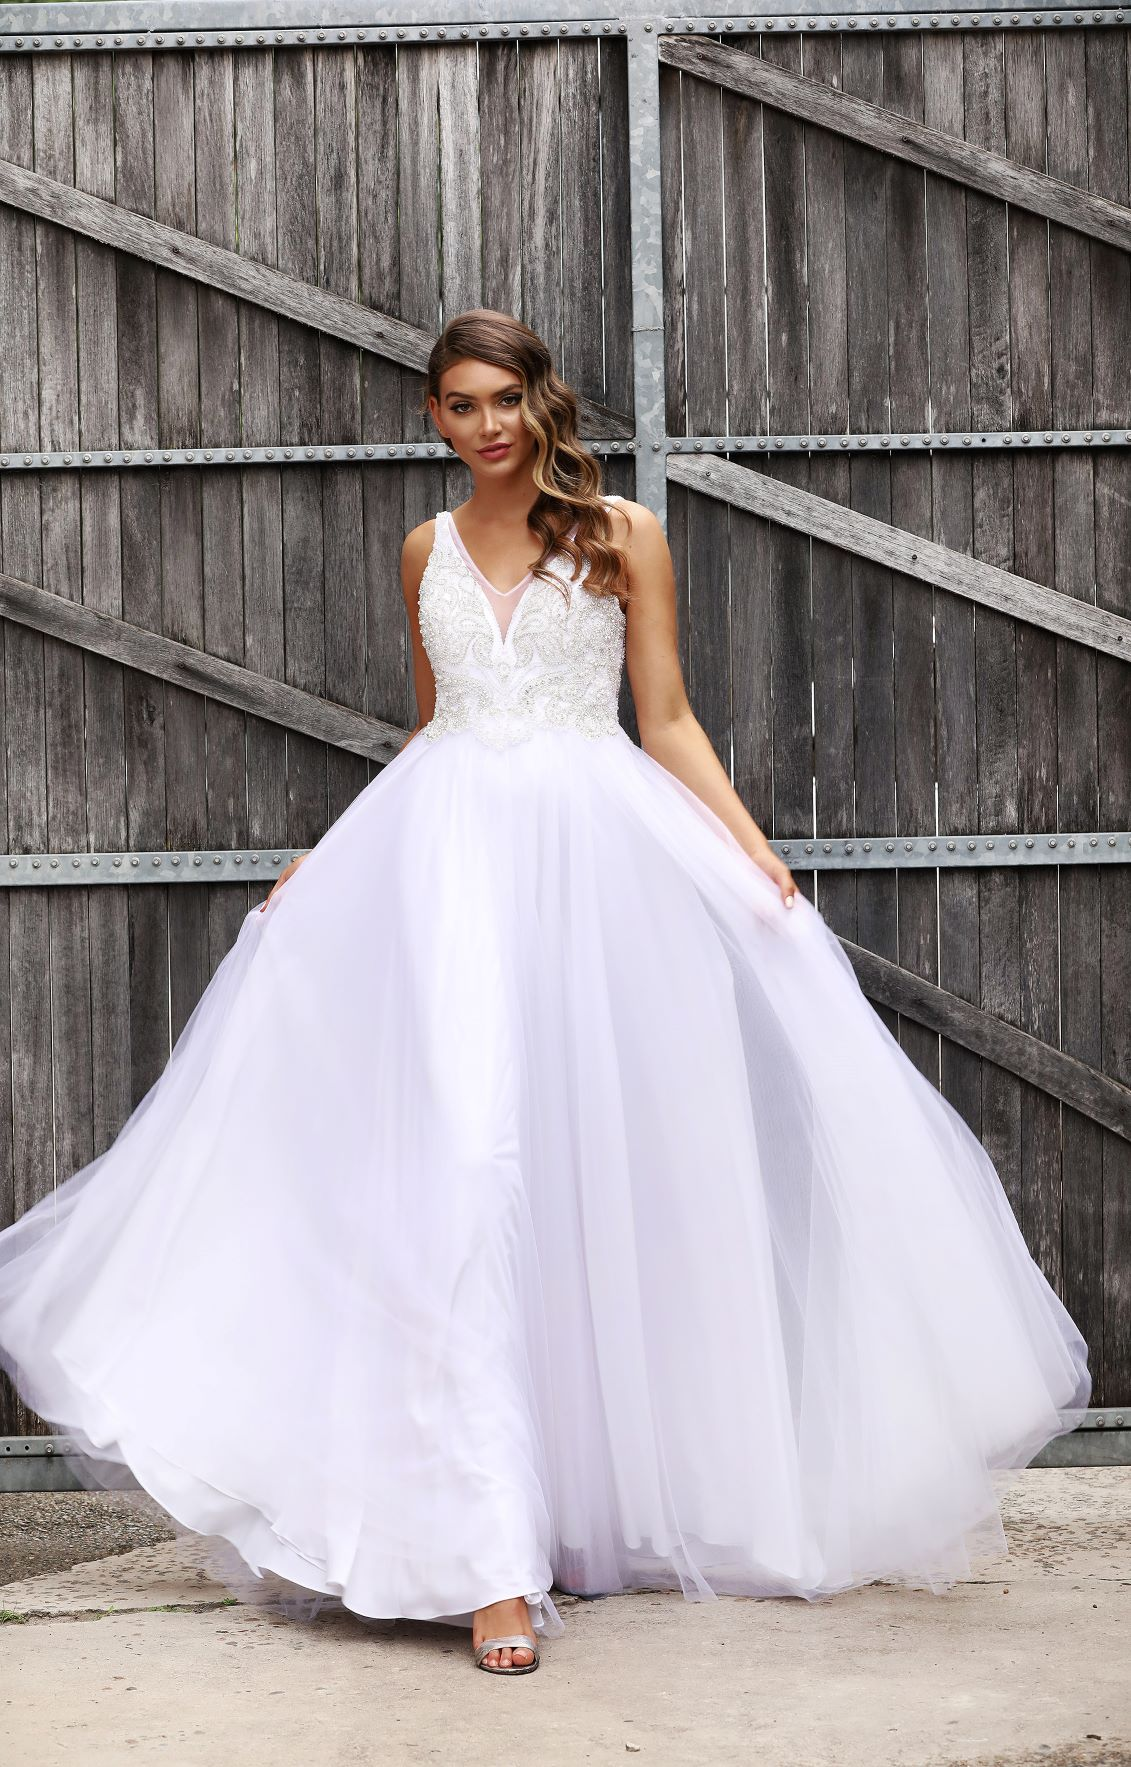 How Early Should I Start Searching For A Wedding Gown?